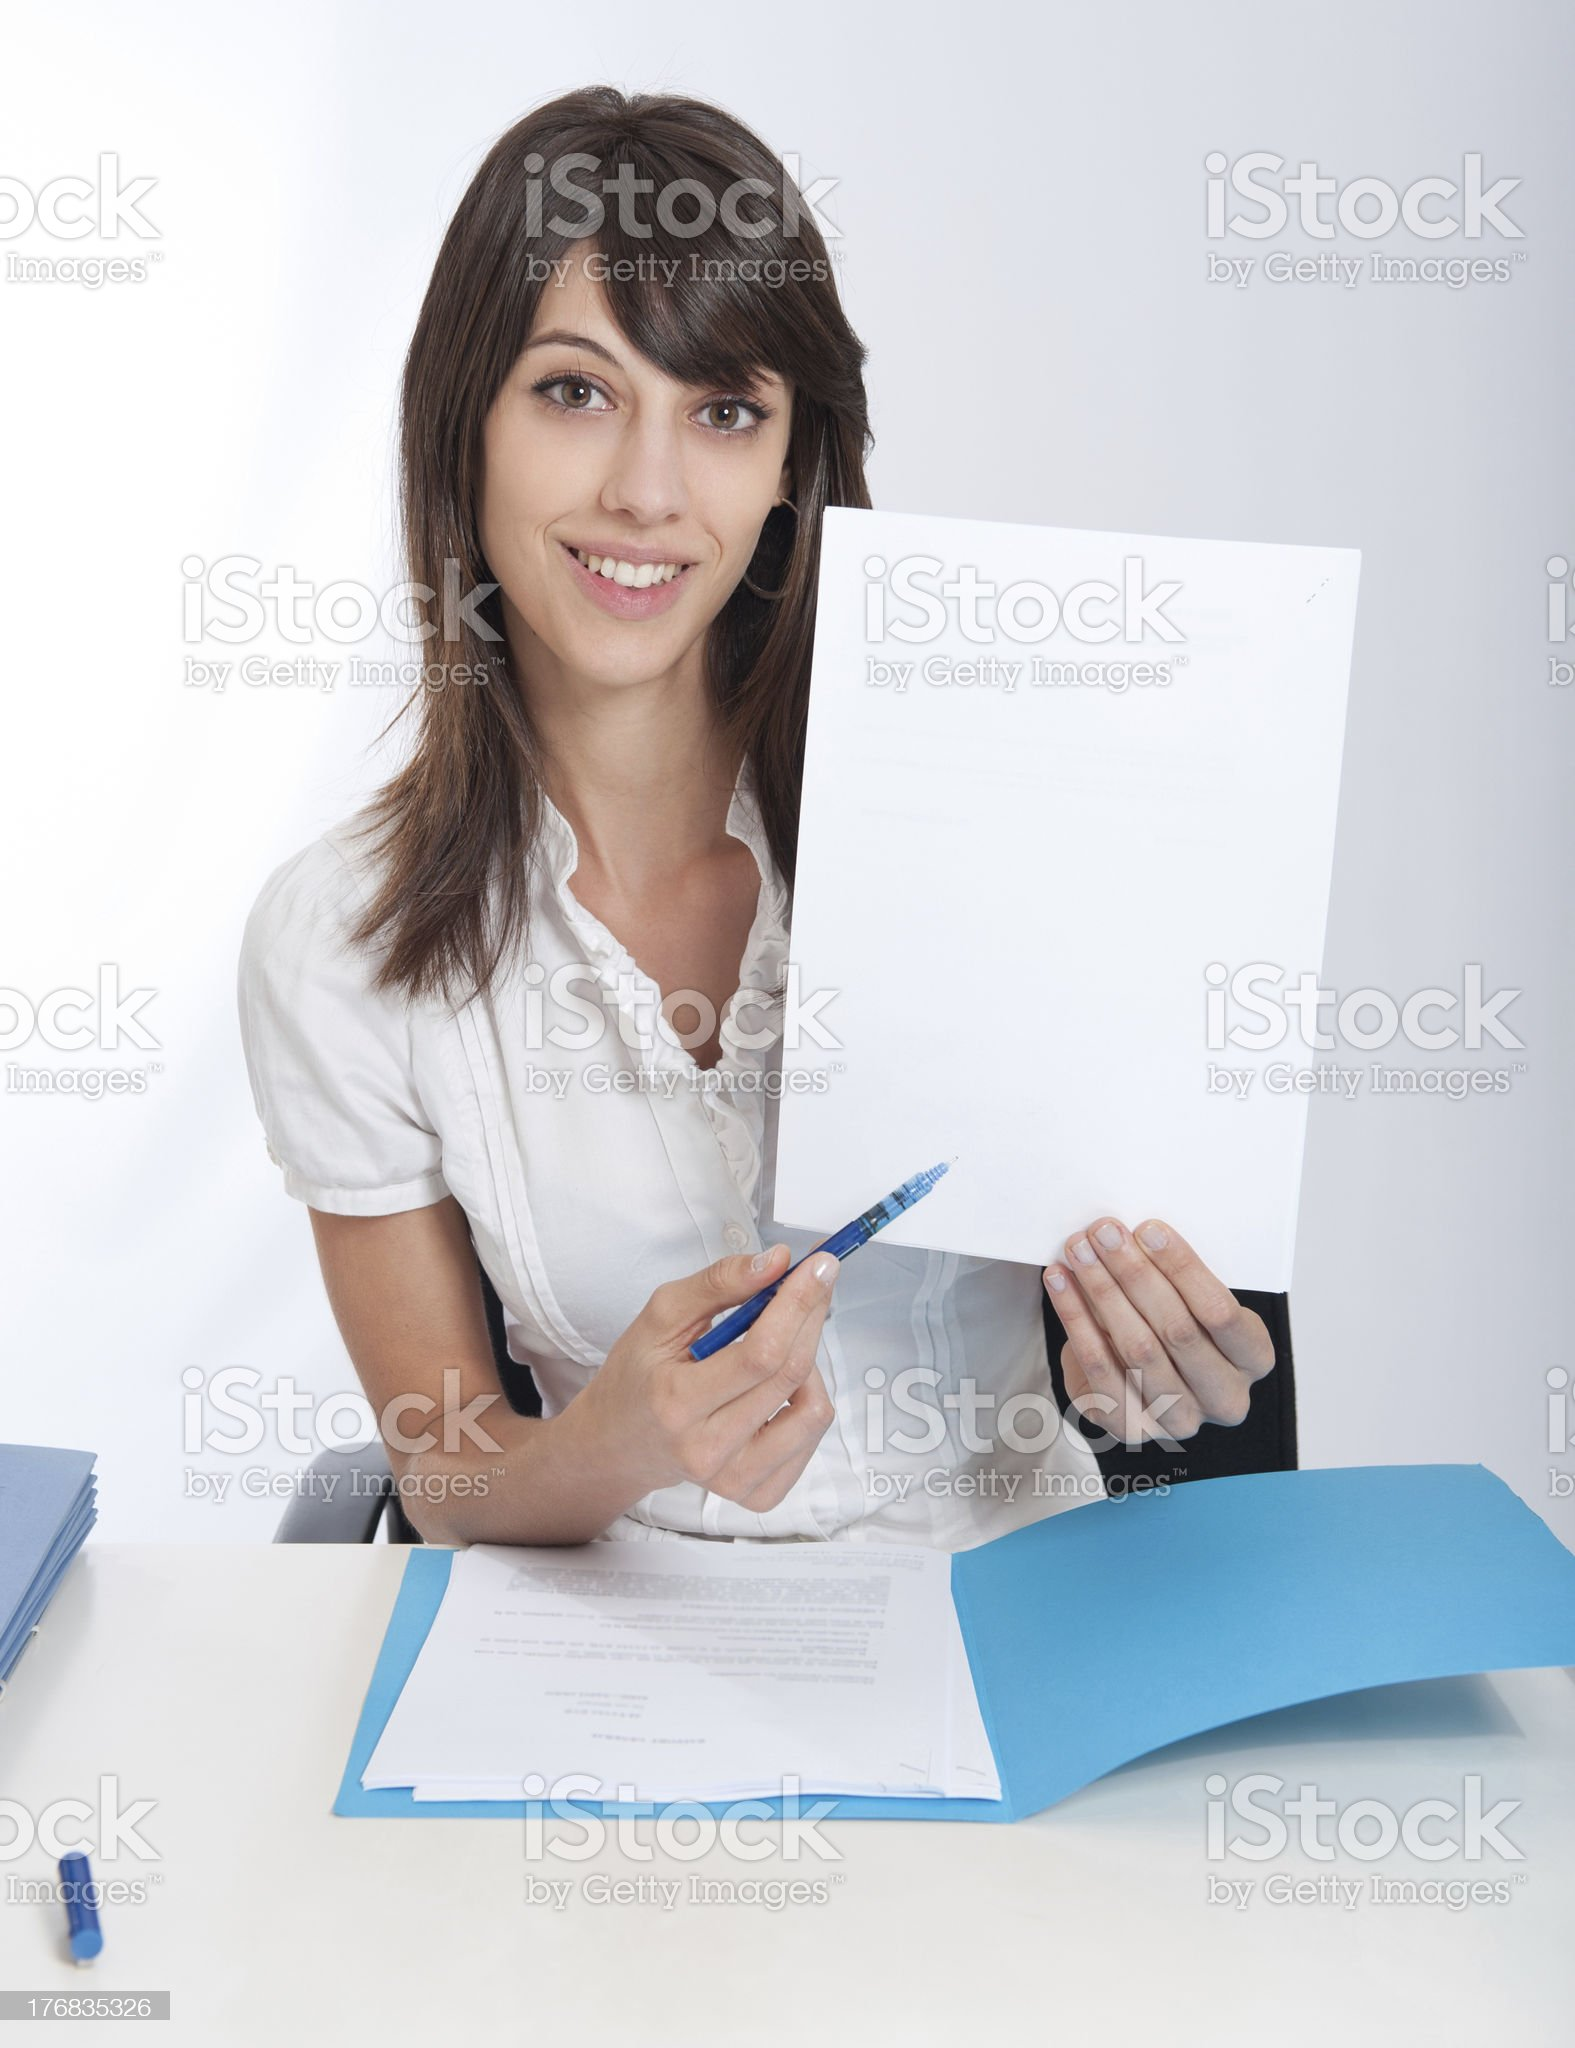 Happy business woman with your message royalty-free stock photo